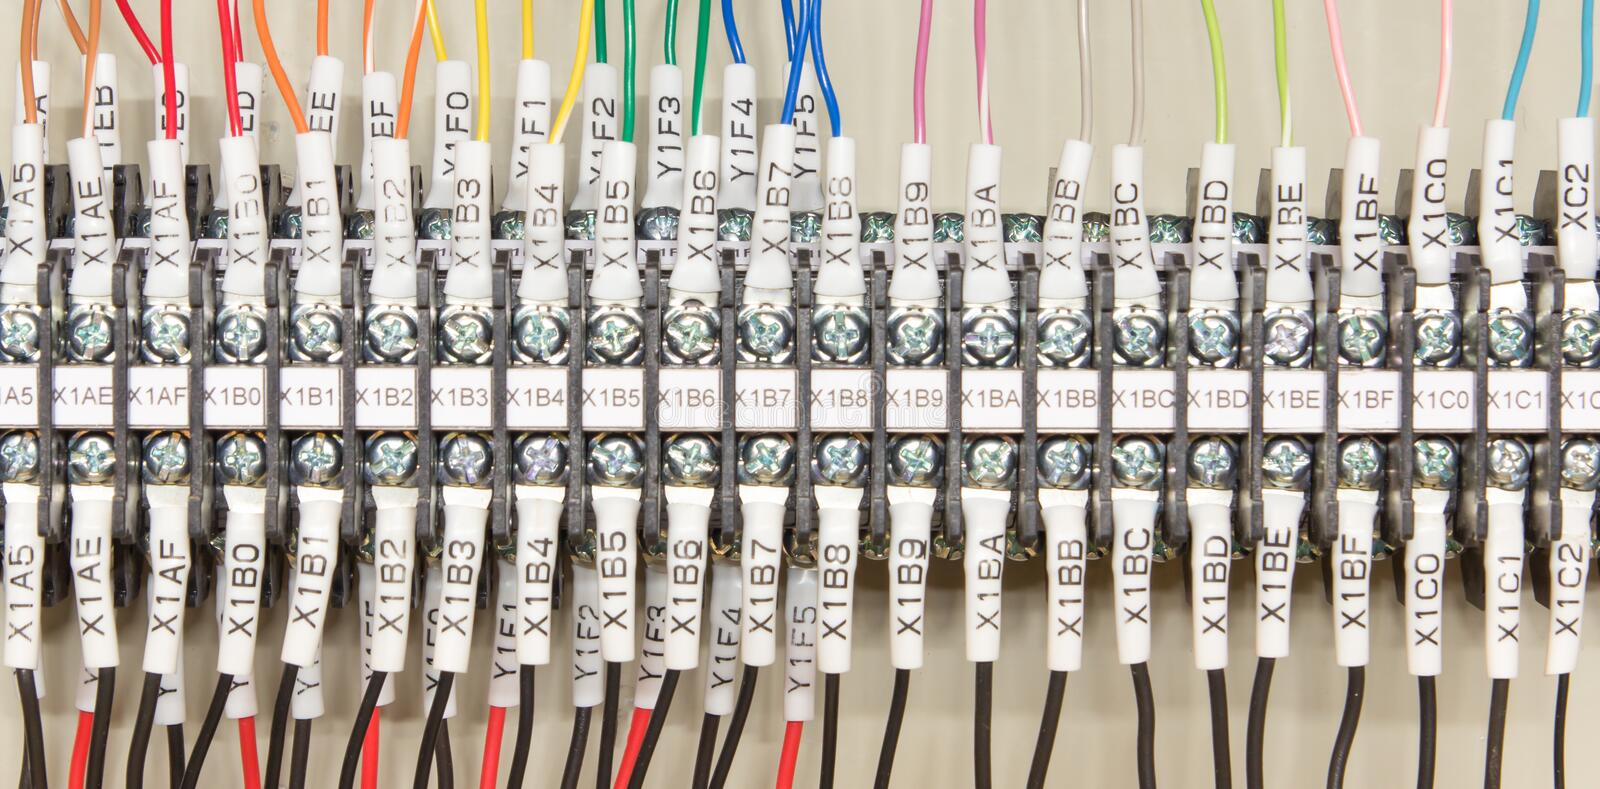 wiring plc control panel wires industrial factory 43603385 wiring plc stock photo image 43603385 plc control panel wiring diagram pdf at reclaimingppi.co